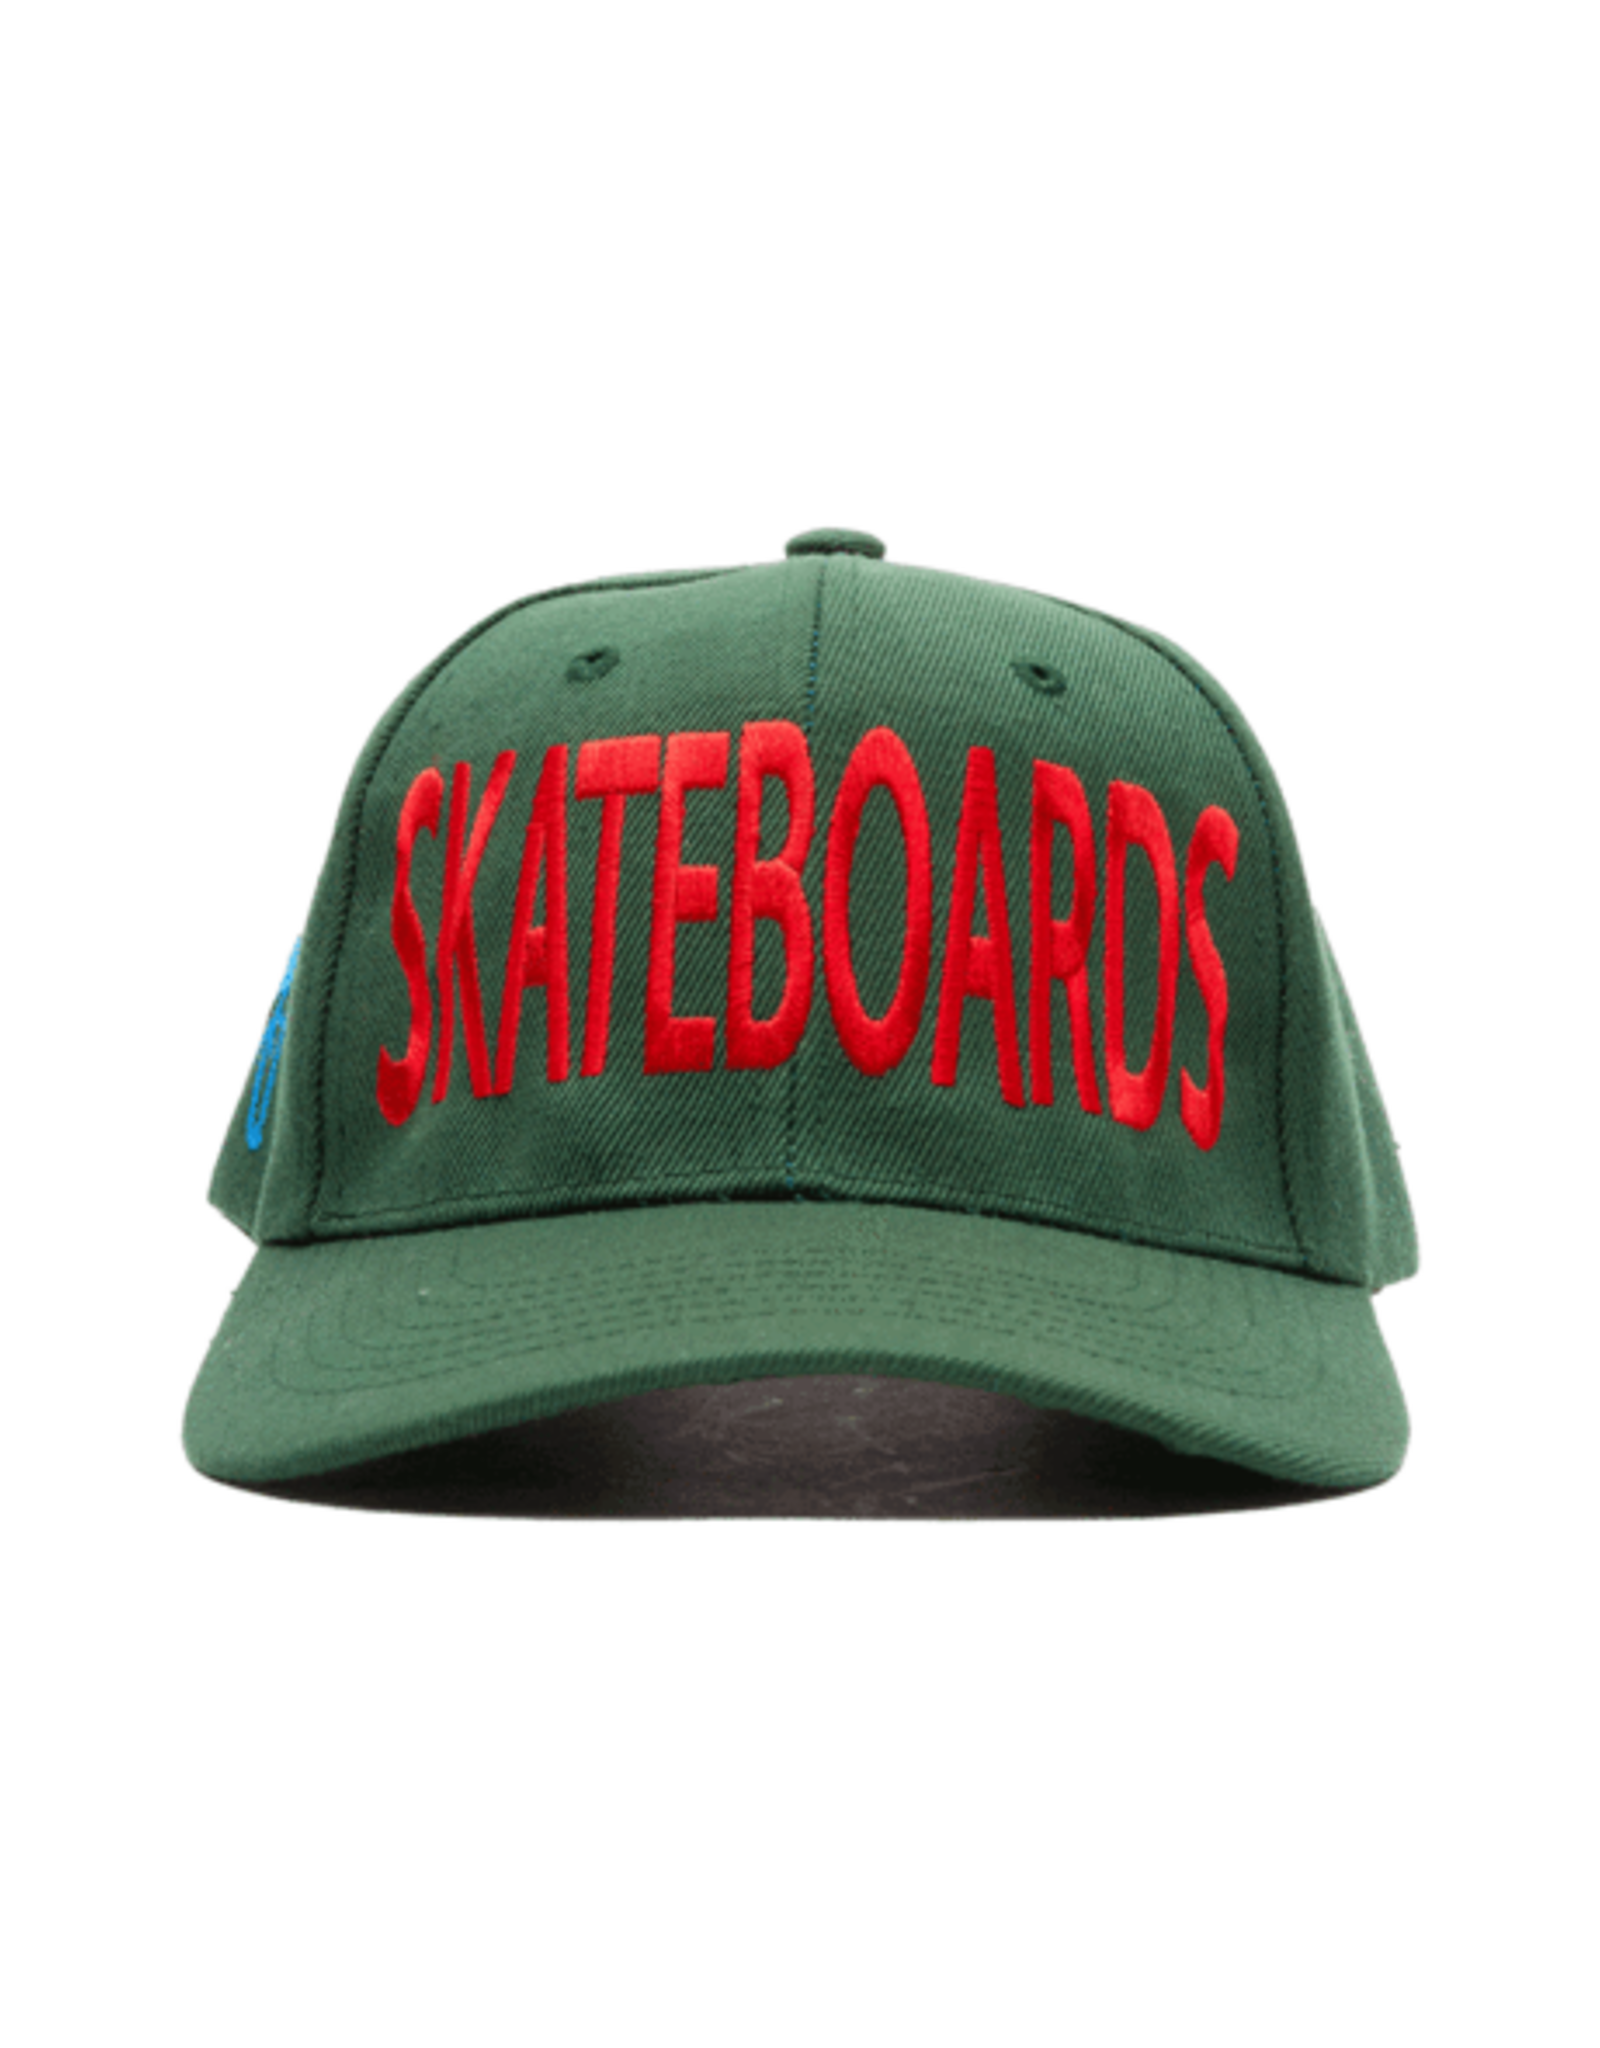 CORPORATE SKATEBOARDS CORPORATE LOOK AT ME BITCH HAT - GREEN